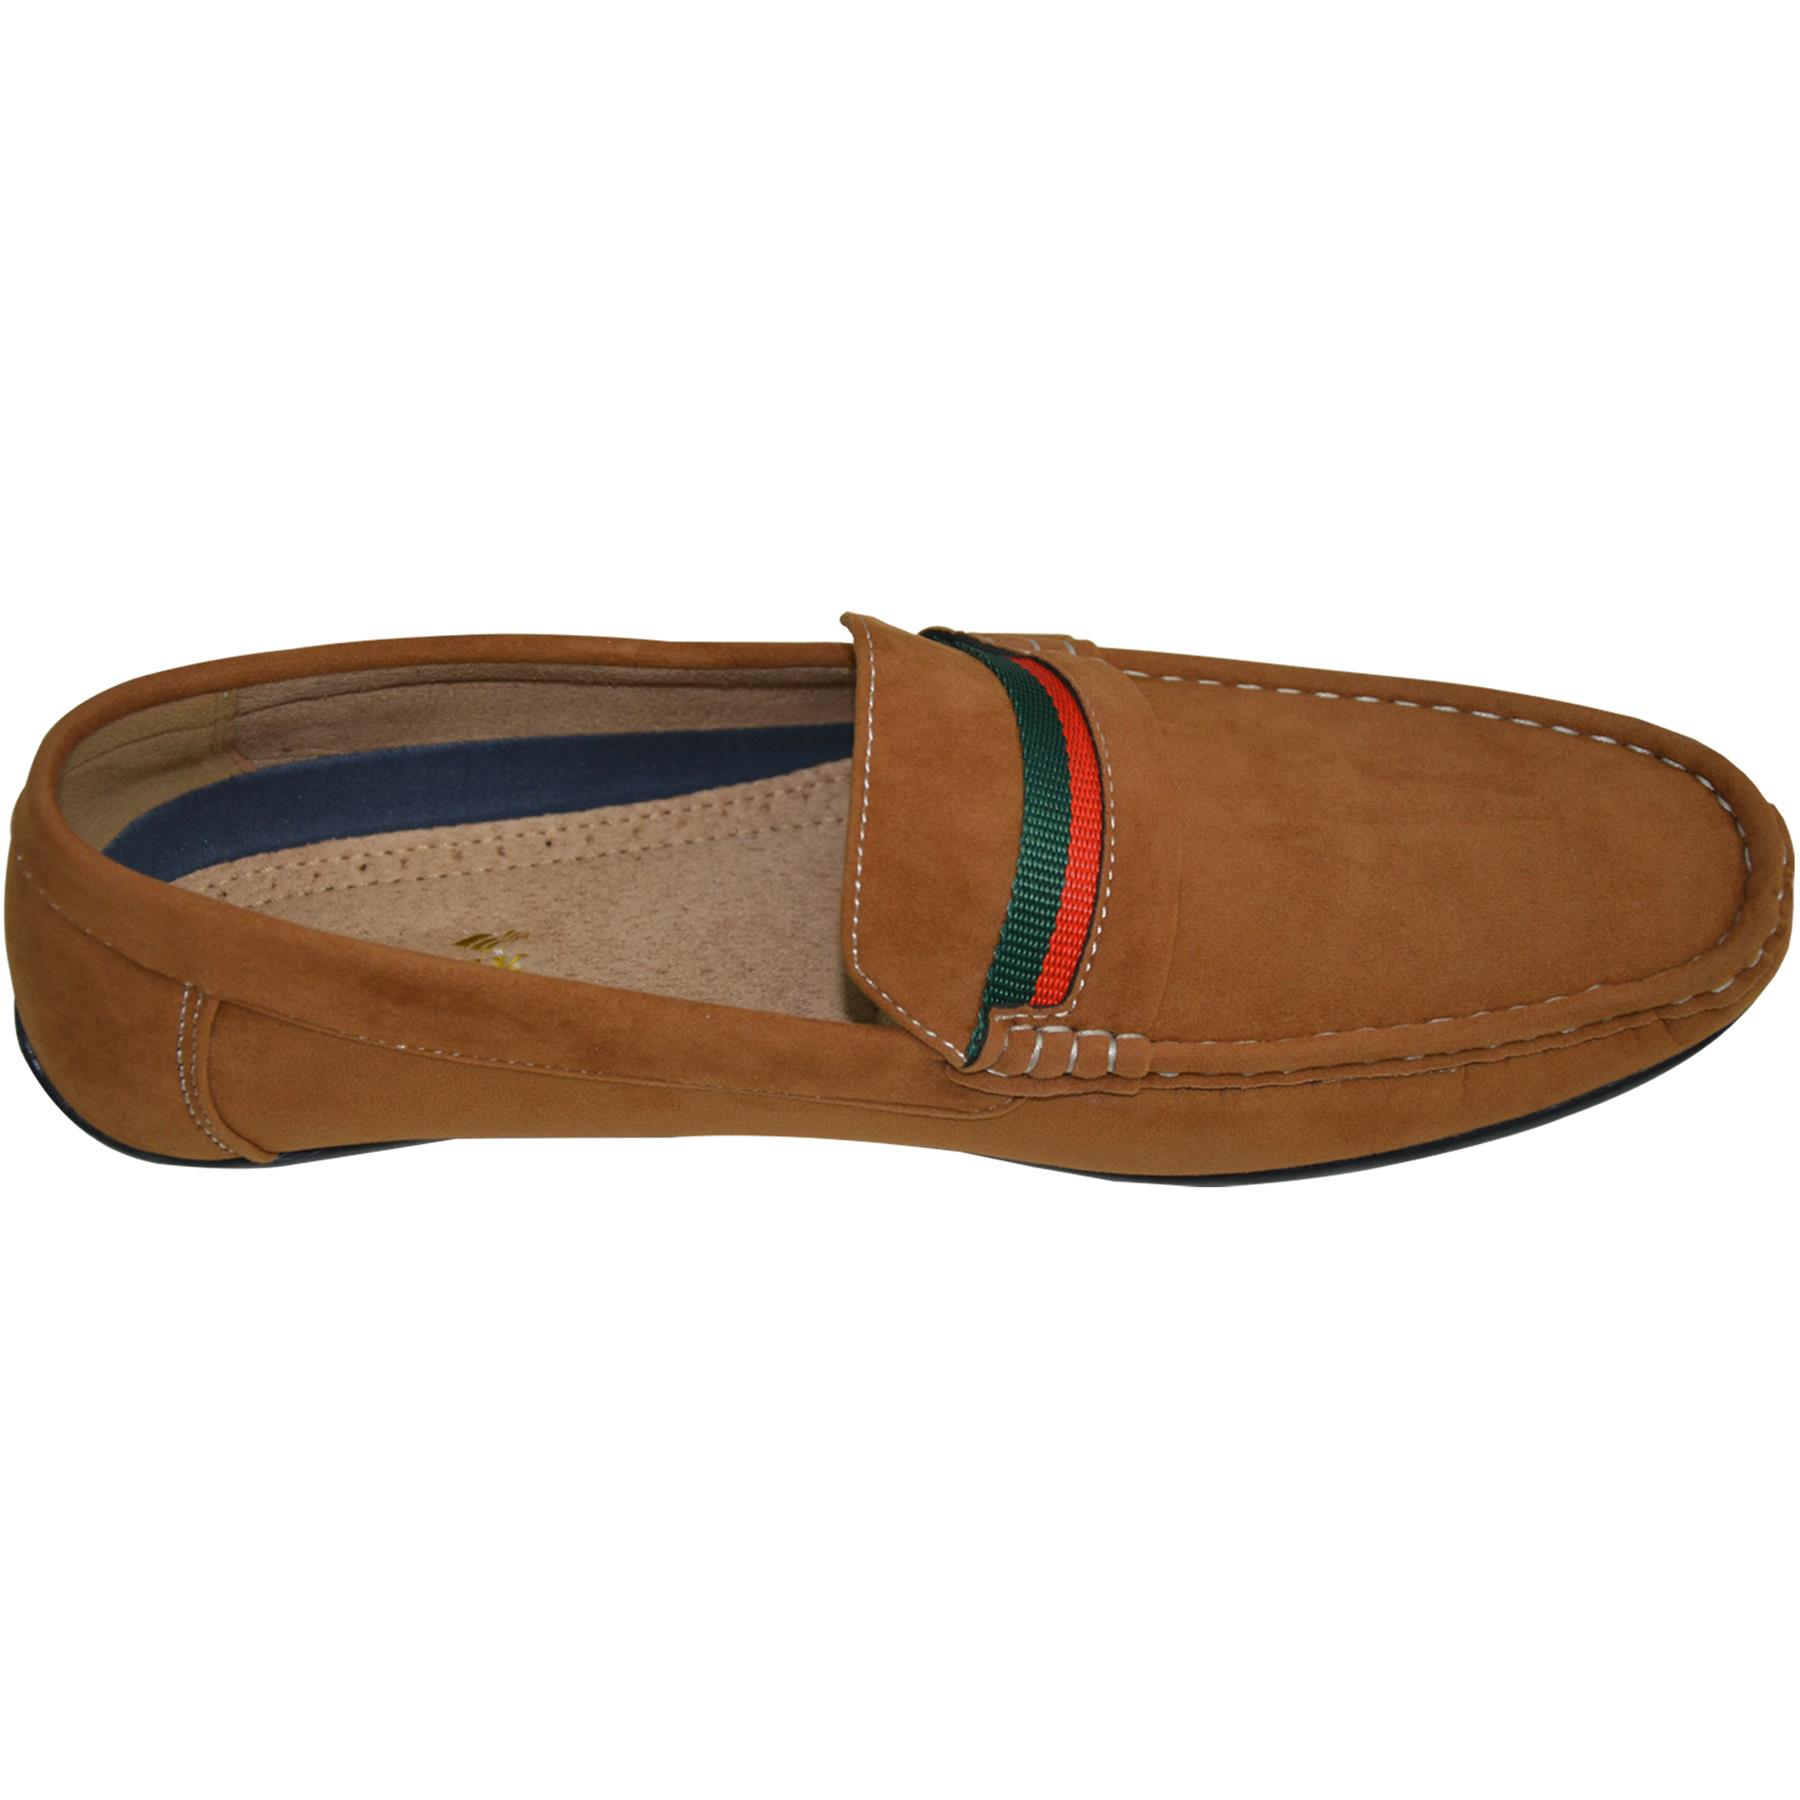 Mens-Slip-Ons-Shoes-Boat-Deck-Driving-Smart-Buckle-Moccasins-Suede-Look-Loafers thumbnail 29